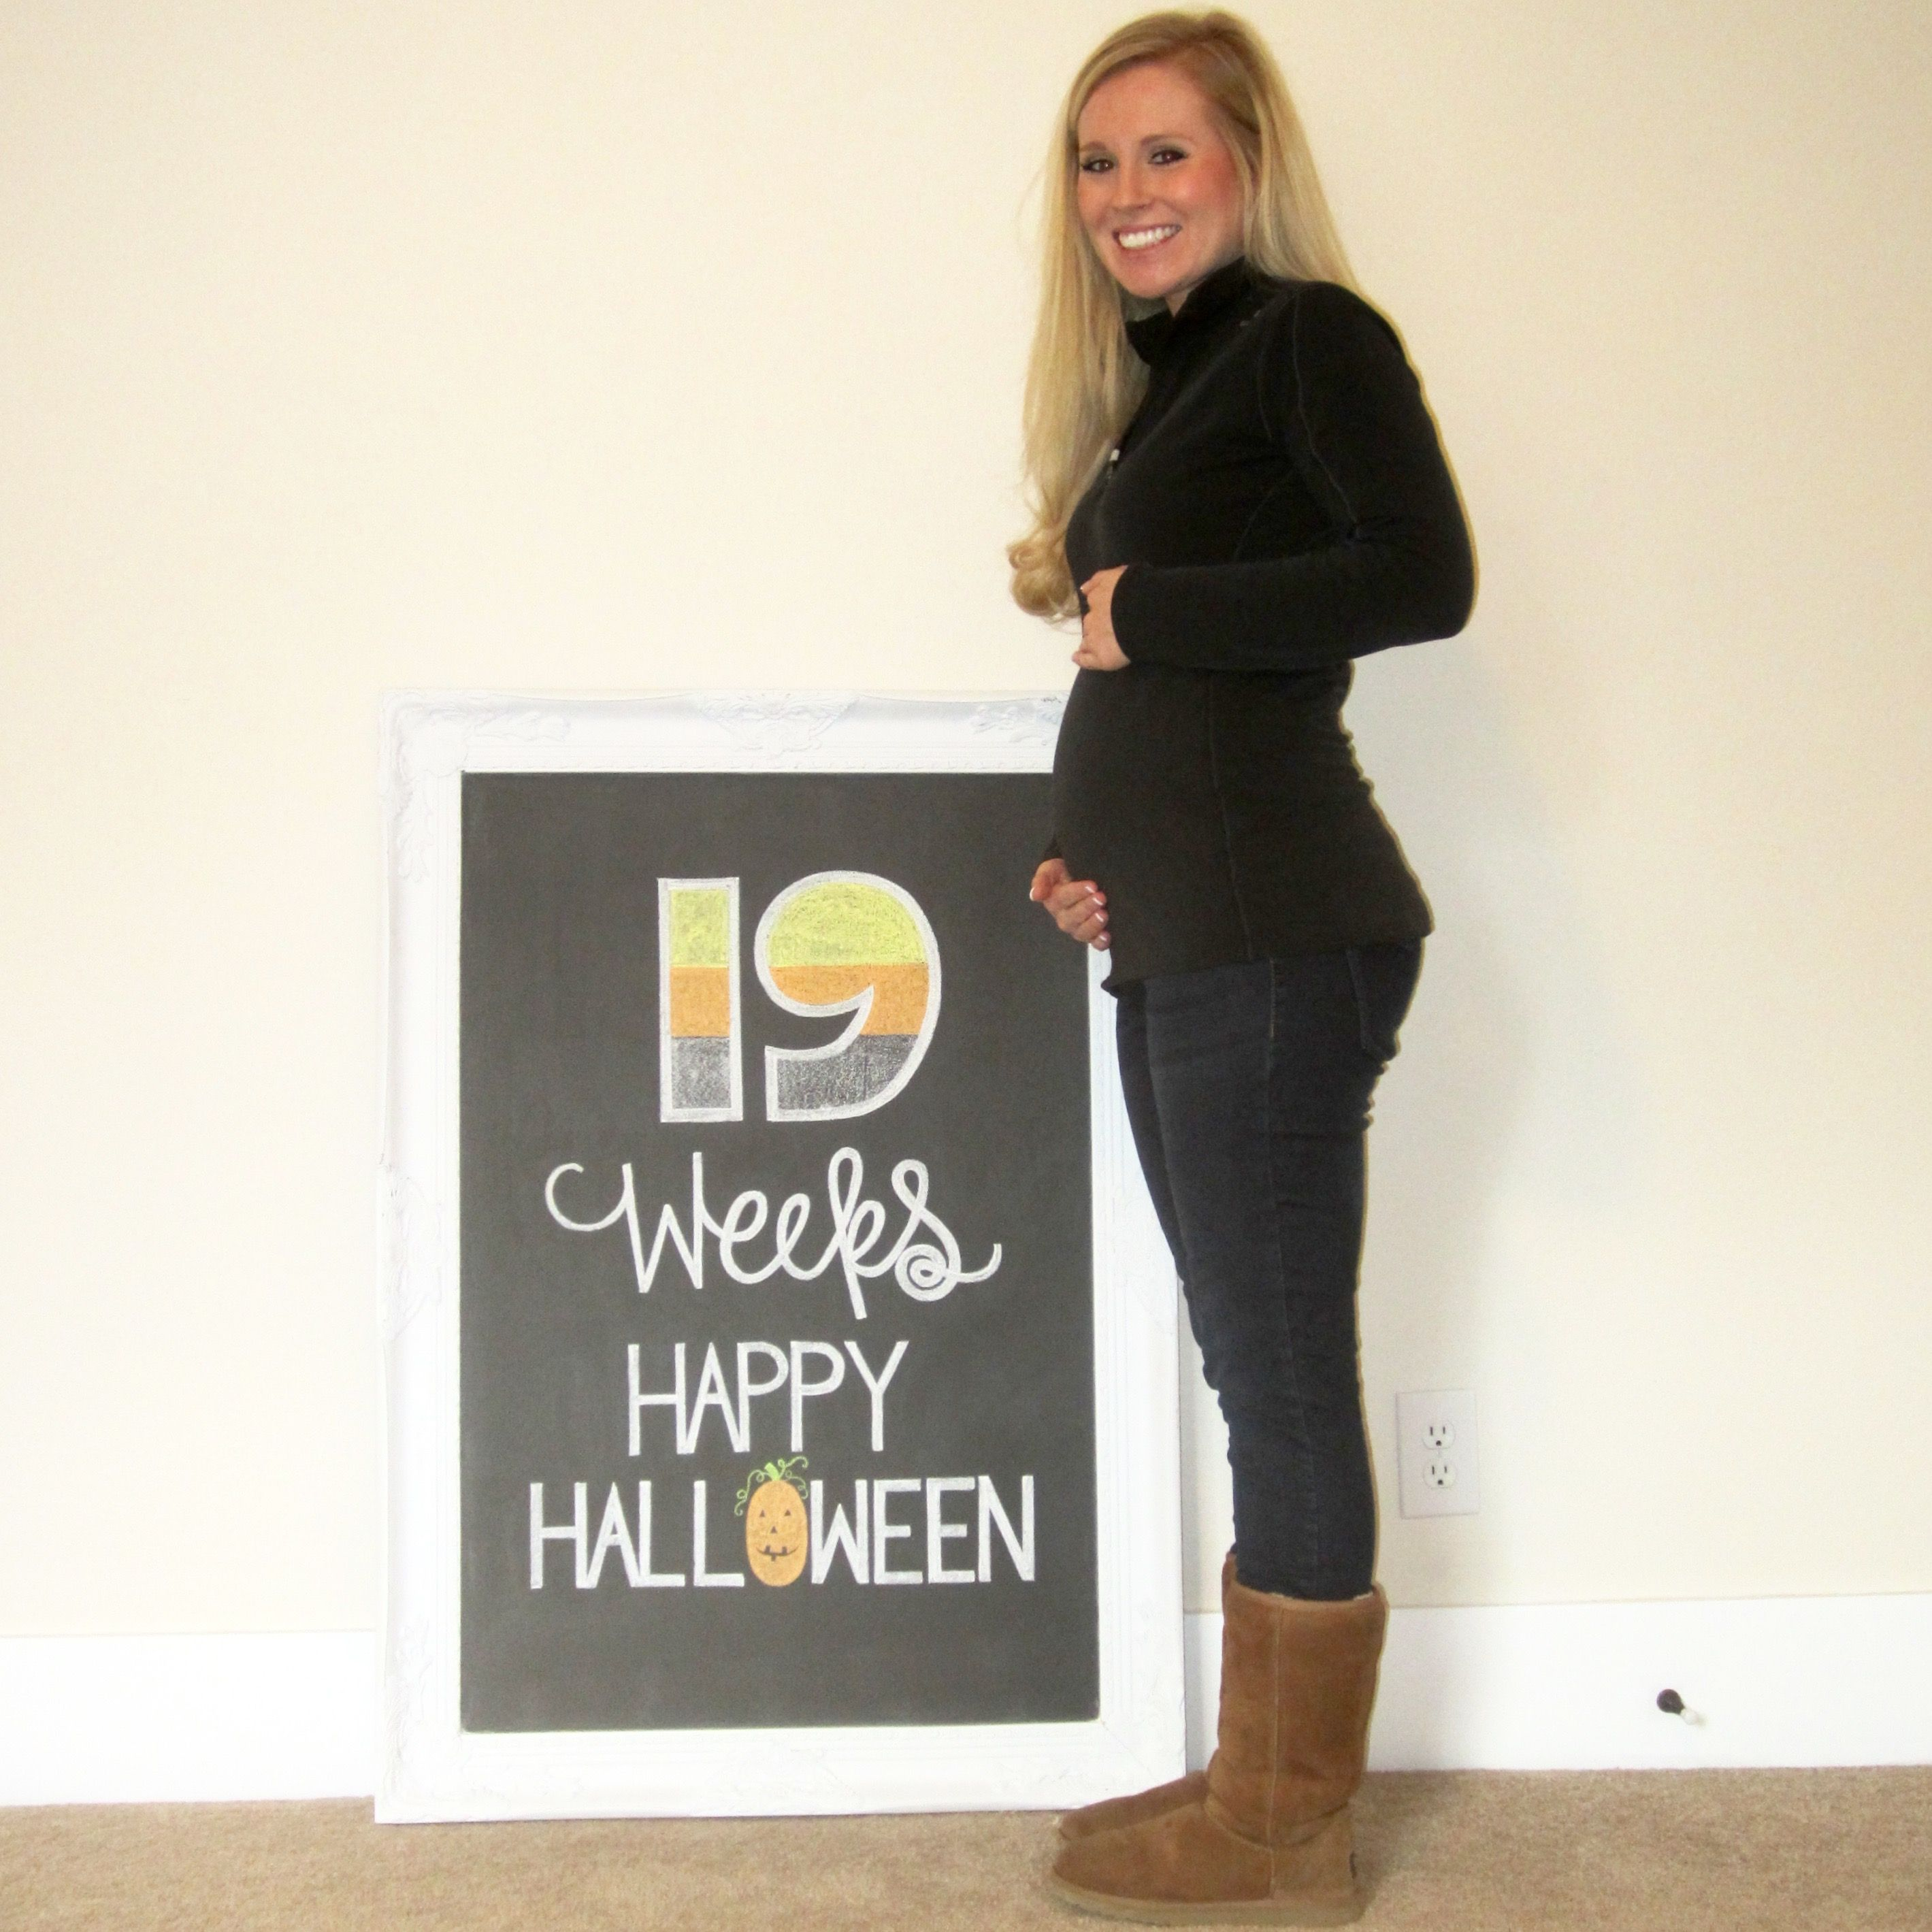 19 Weeks Pregnant Chalkboard and Happy Halloween Chalkboard from Michelle  at everydayshouldsparkle.com